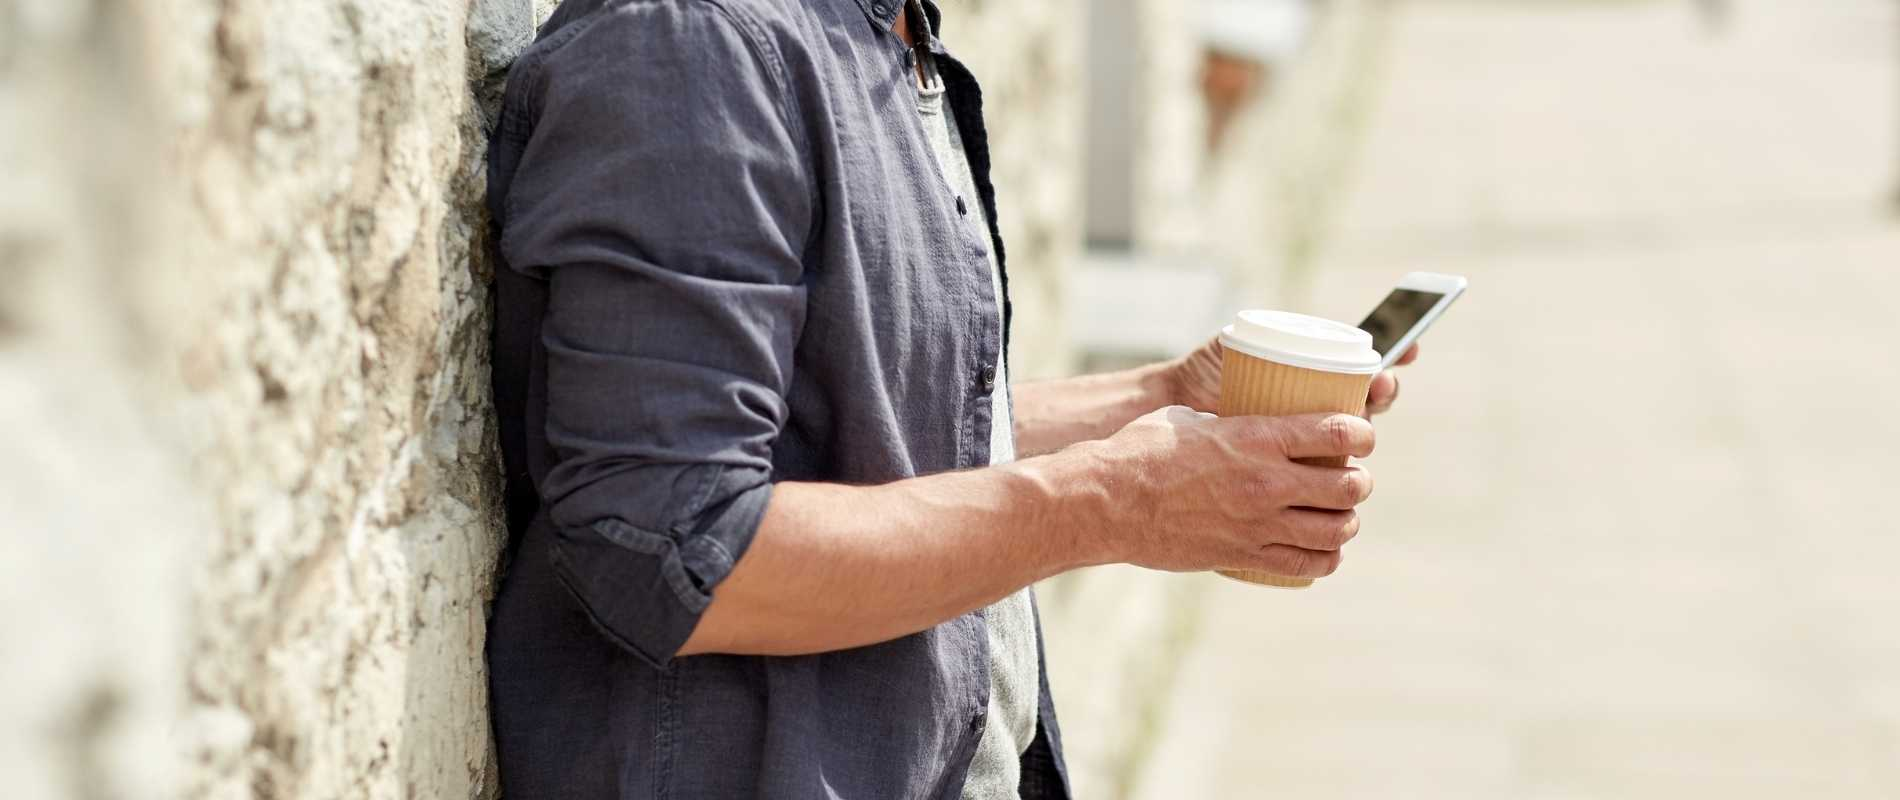 young man leaning against wall with smartphone and coffee in hand